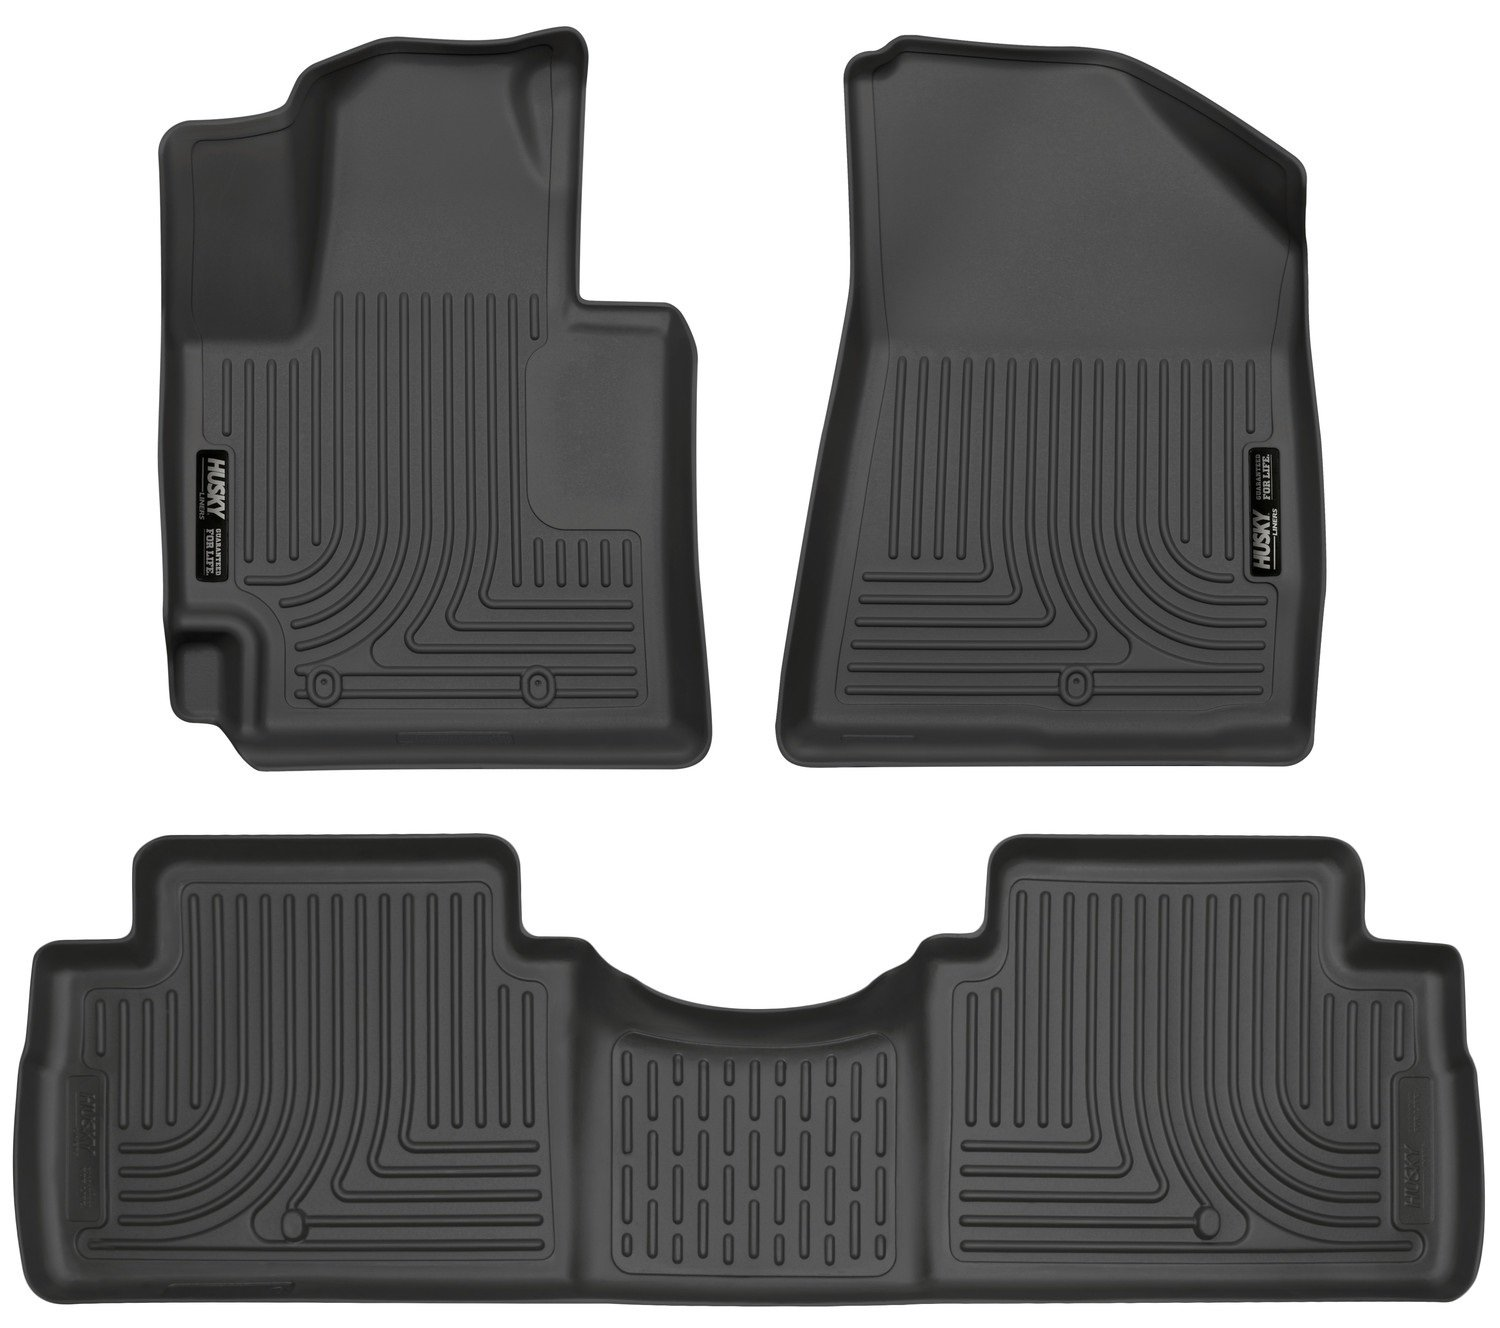 Weathertech floor mats 2015 kia soul - Amazon Com Husky Liners Front 2nd Seat Floor Liners Footwell Coverage Fits 14 16 Soul Automotive